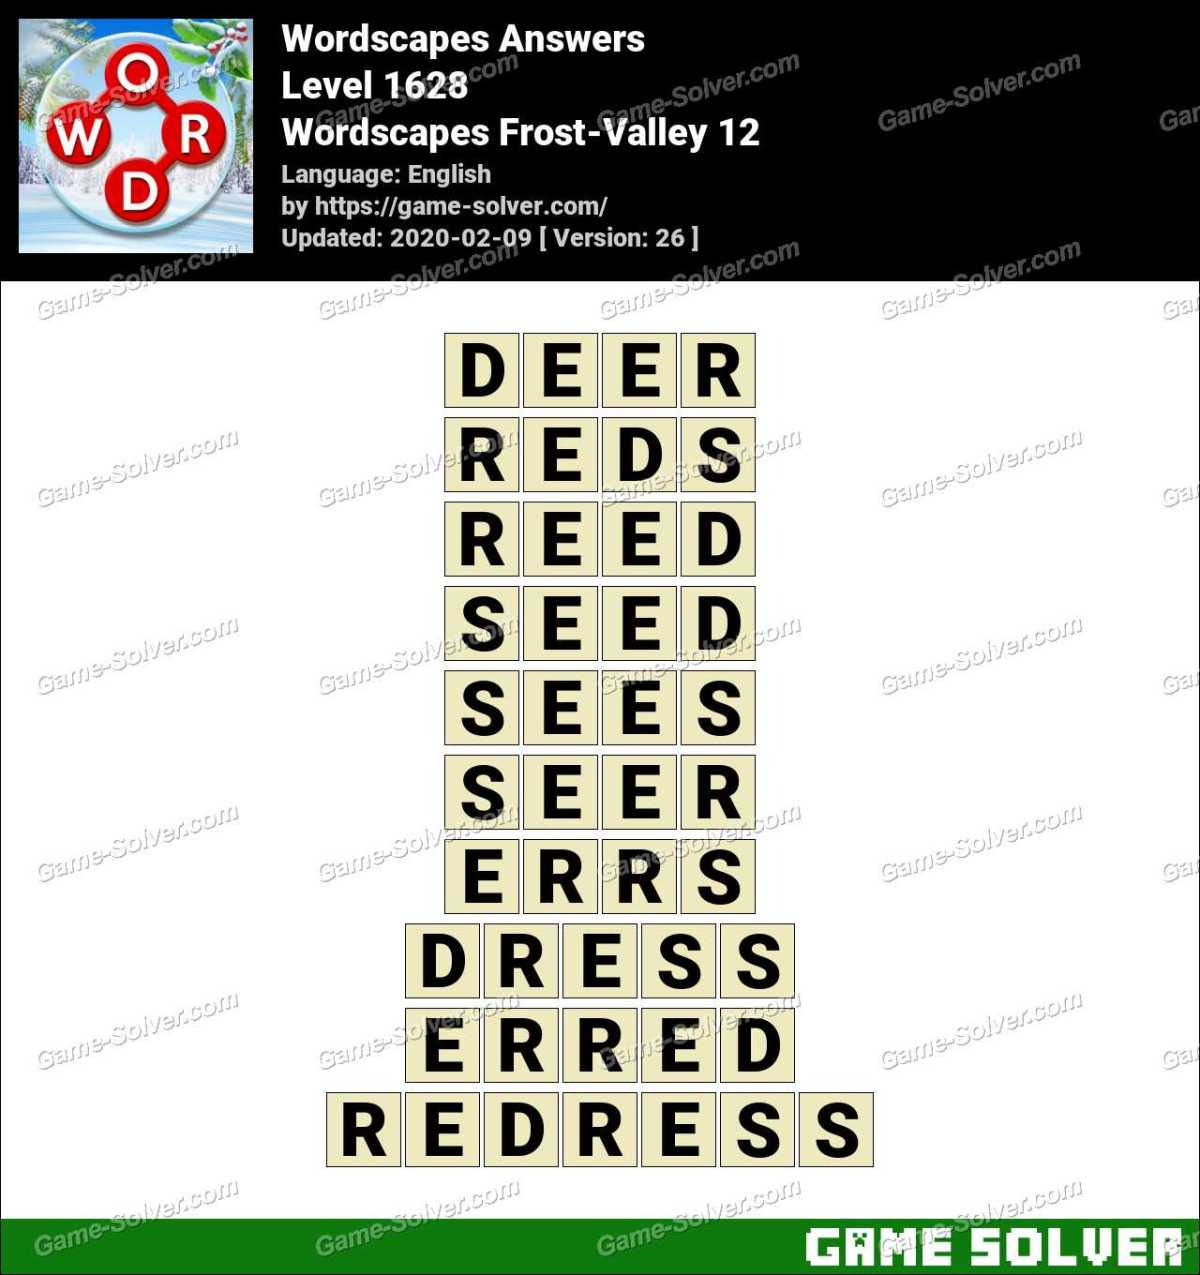 Wordscapes Frost-Valley 12 Answers